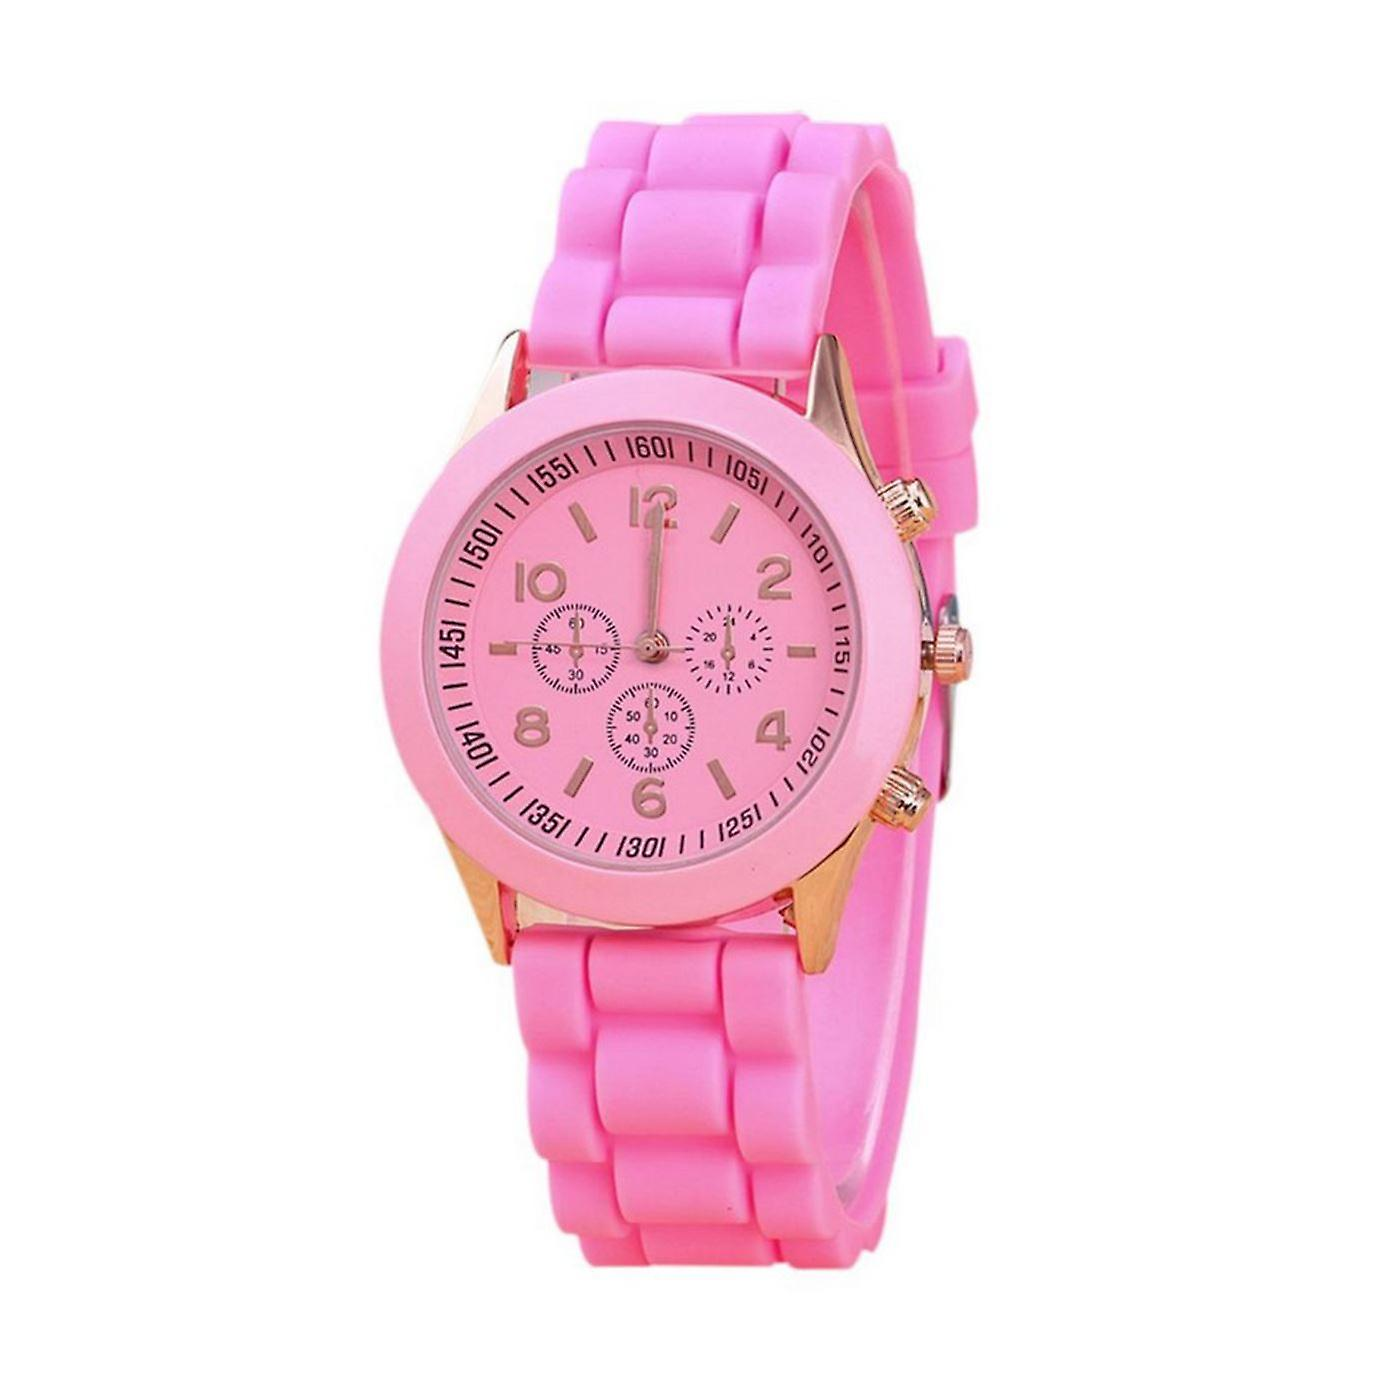 Luxury Ladies Girls Watch Pink Rose Gold Silicone Jelly Strap